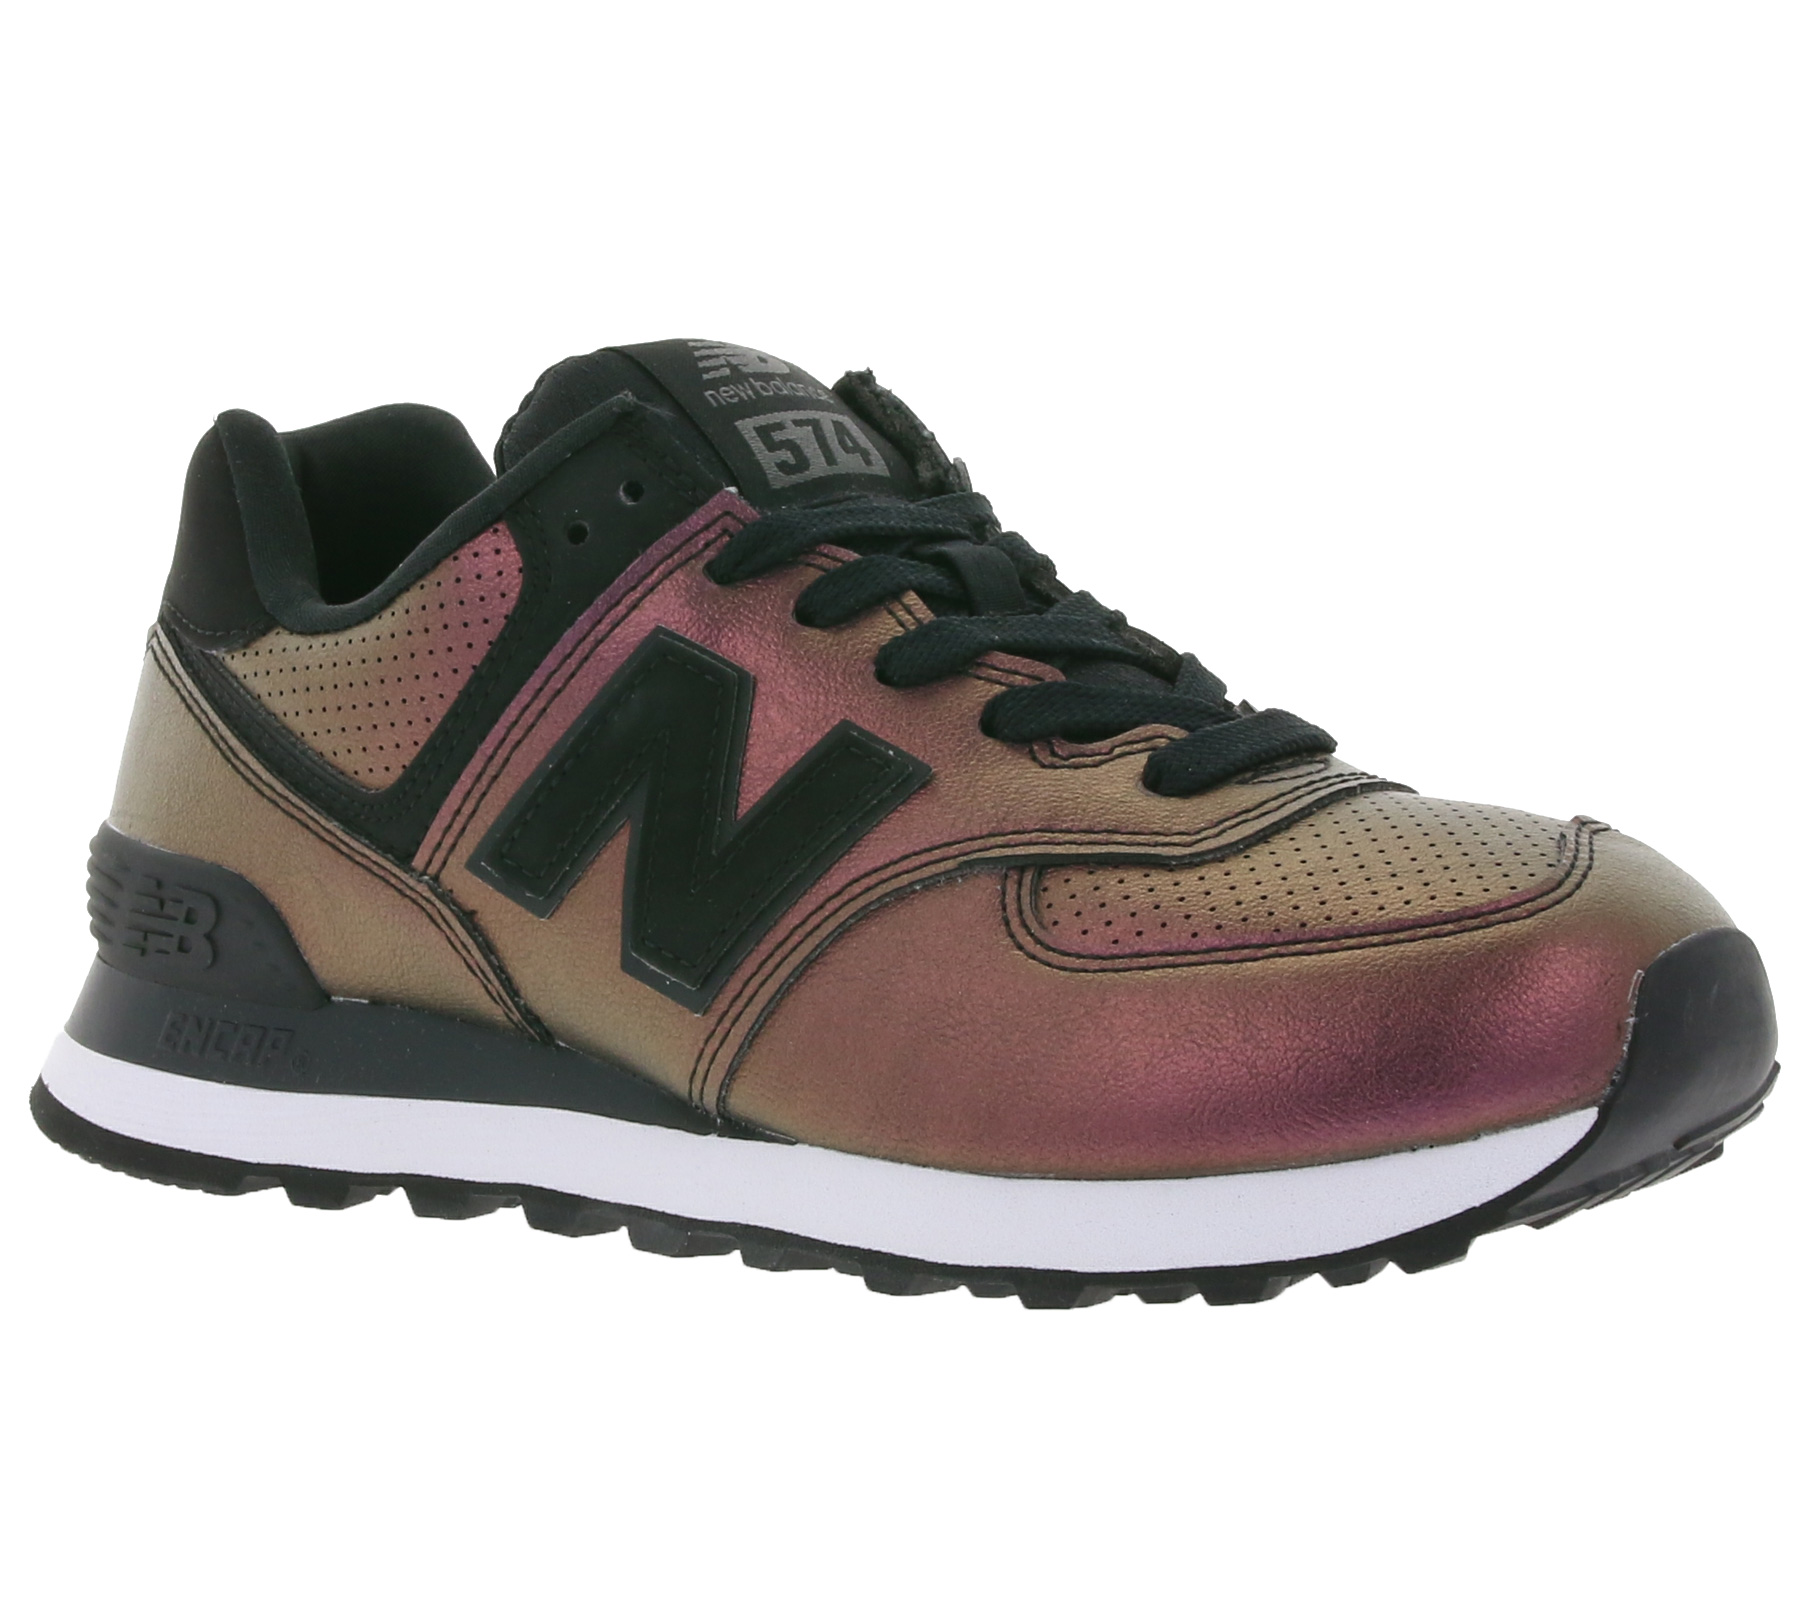 New Balance Outlet-SALE ⇒ SPARE bei New Balance Sneaker ...